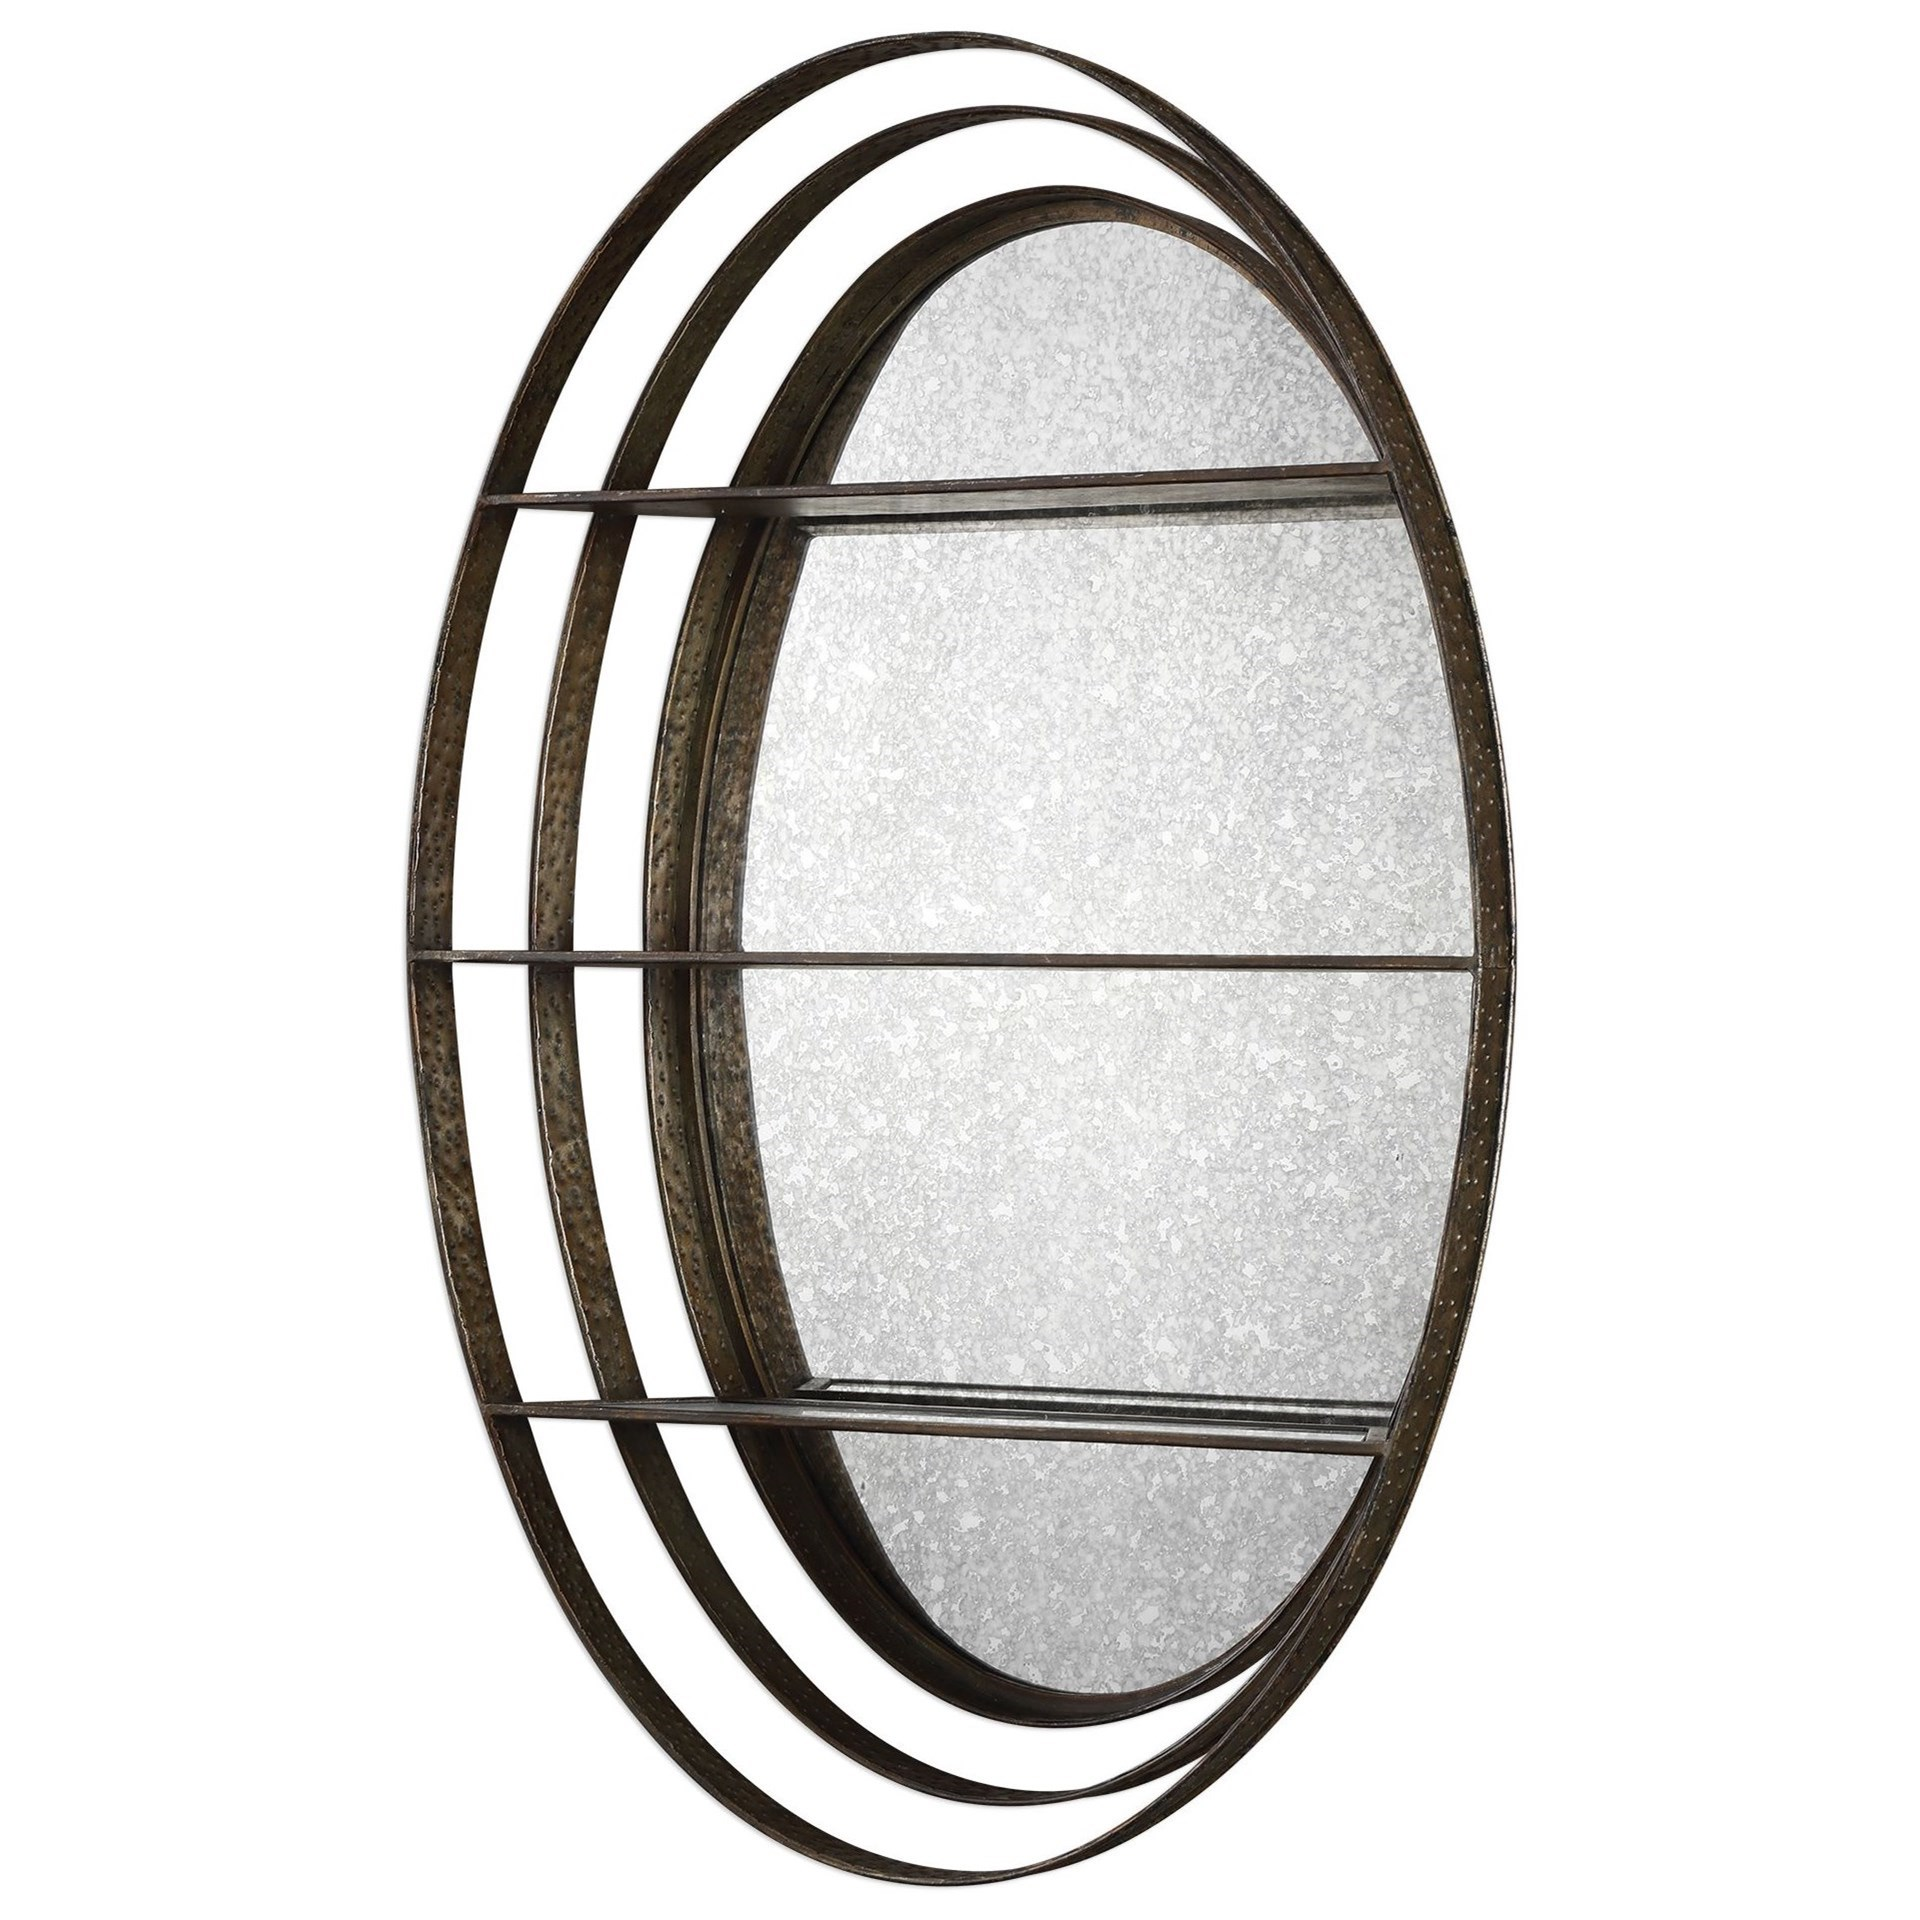 Carine Antique Mirrored Wall Shelf